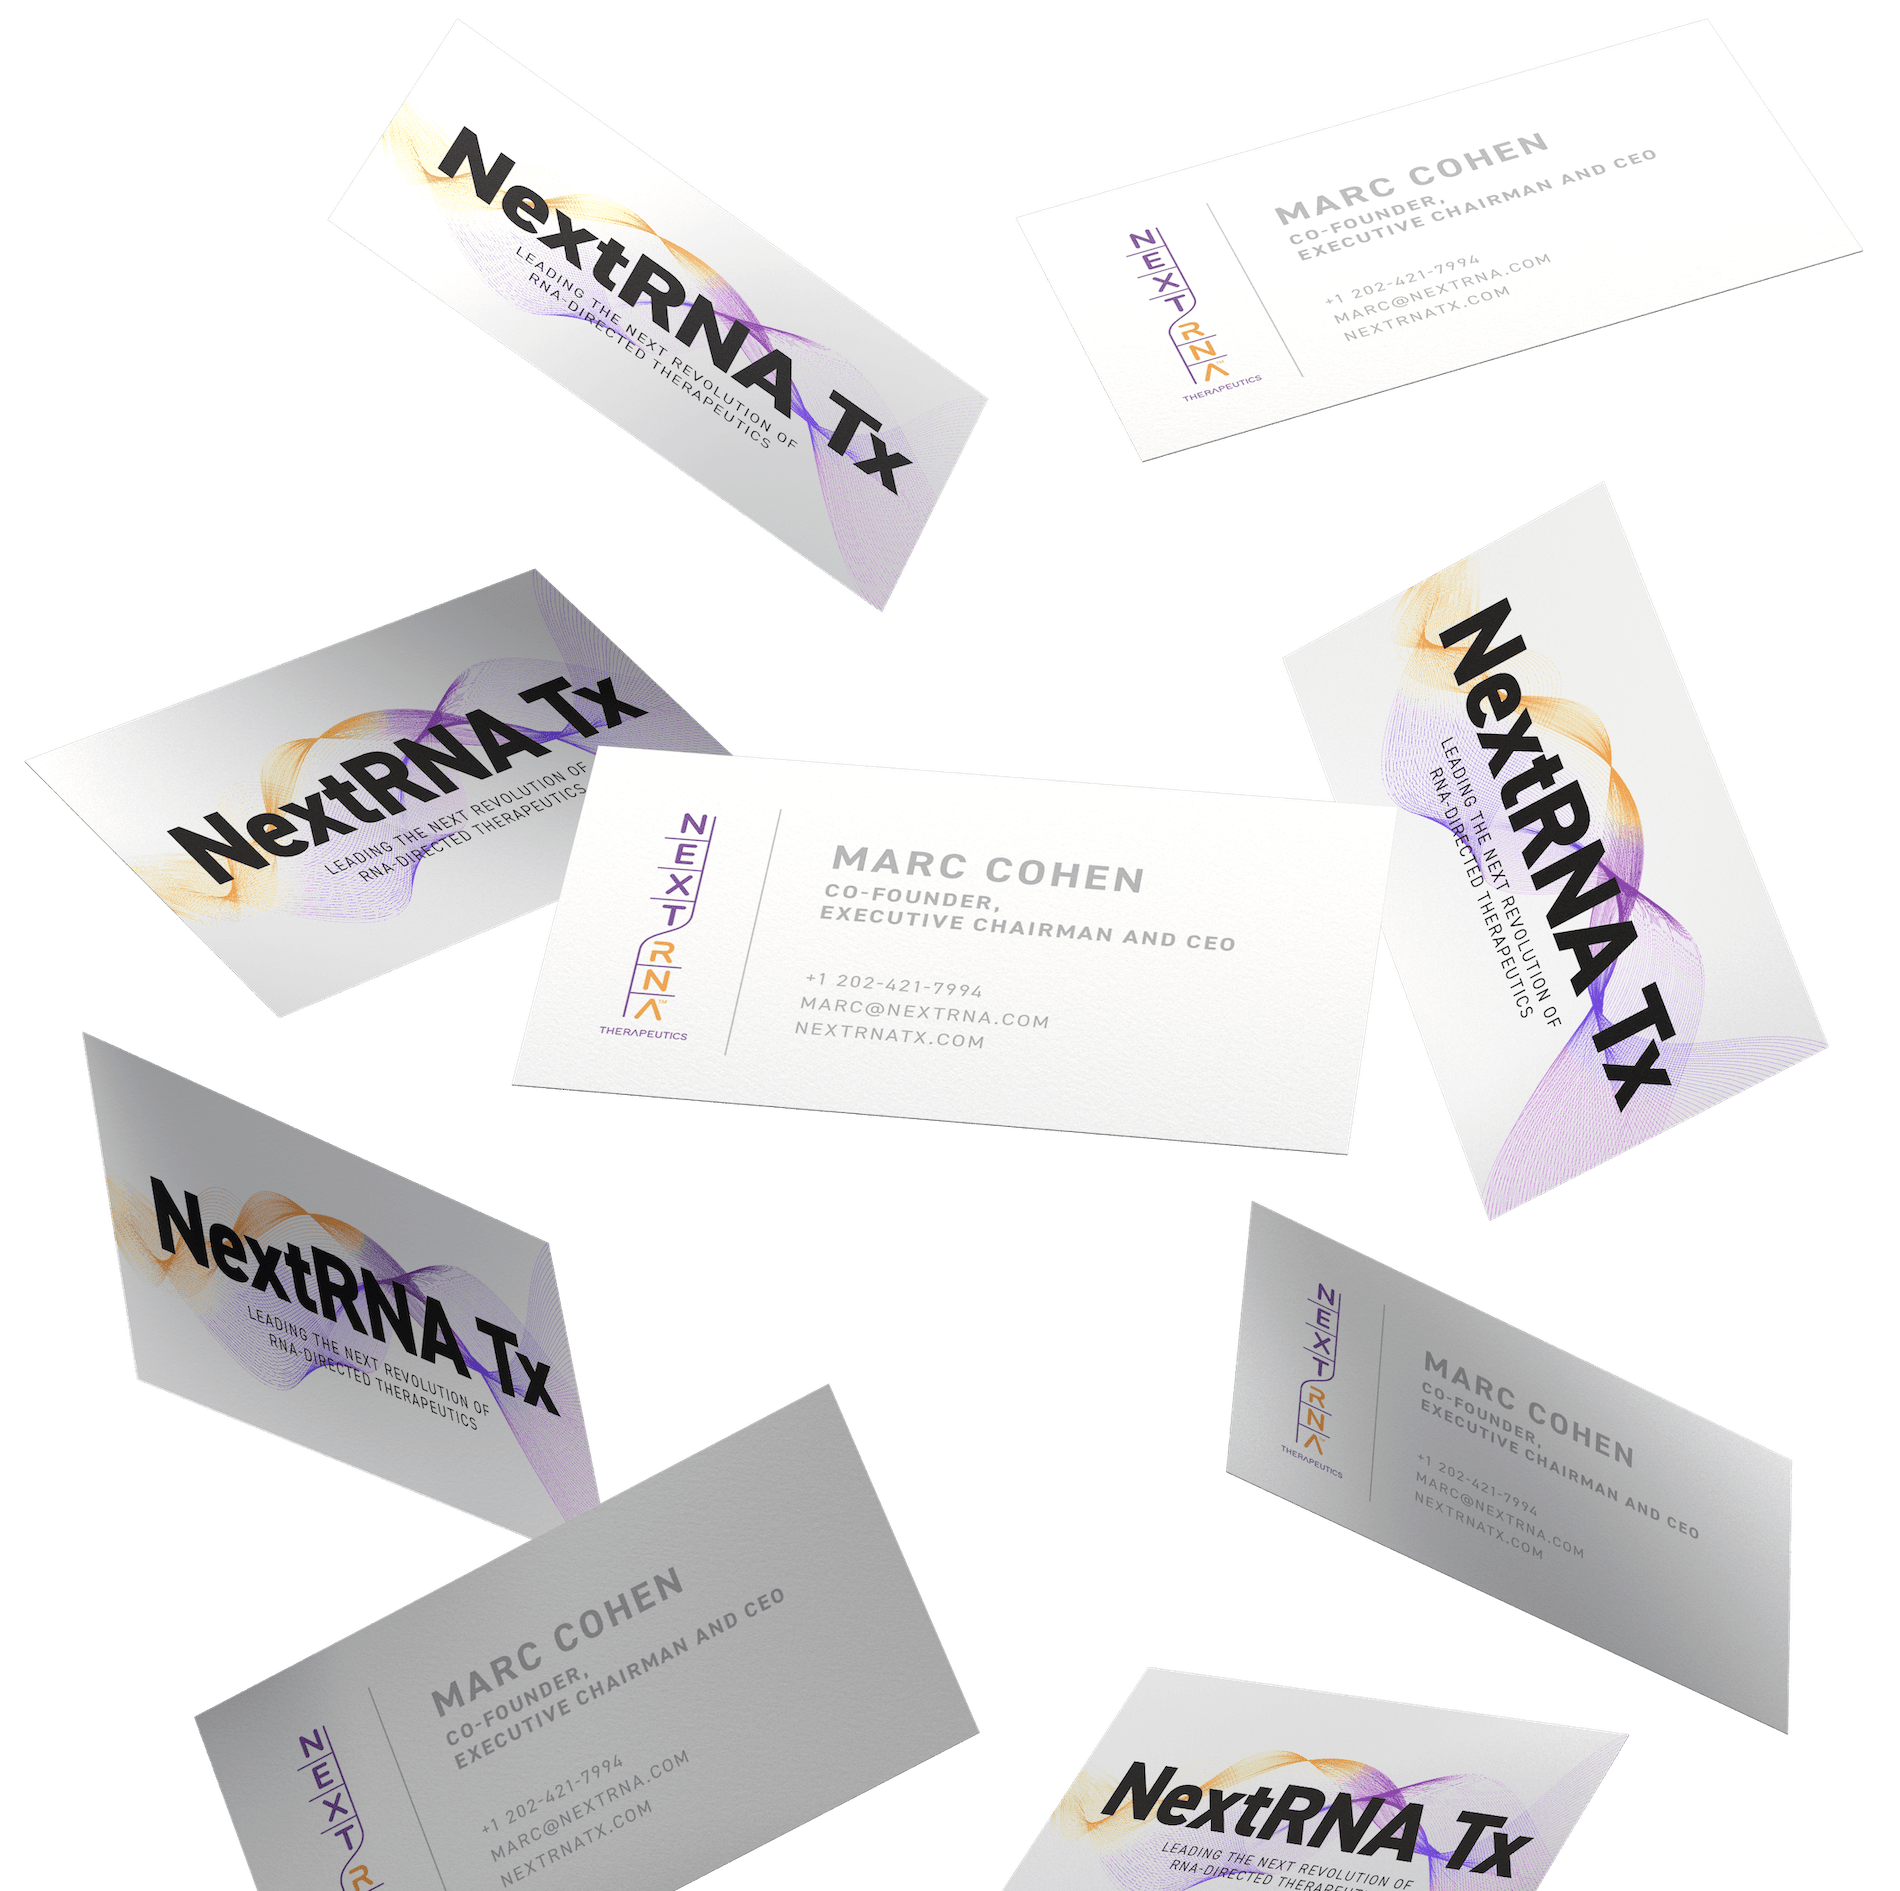 NextRNA Tx Business cards floating in the air